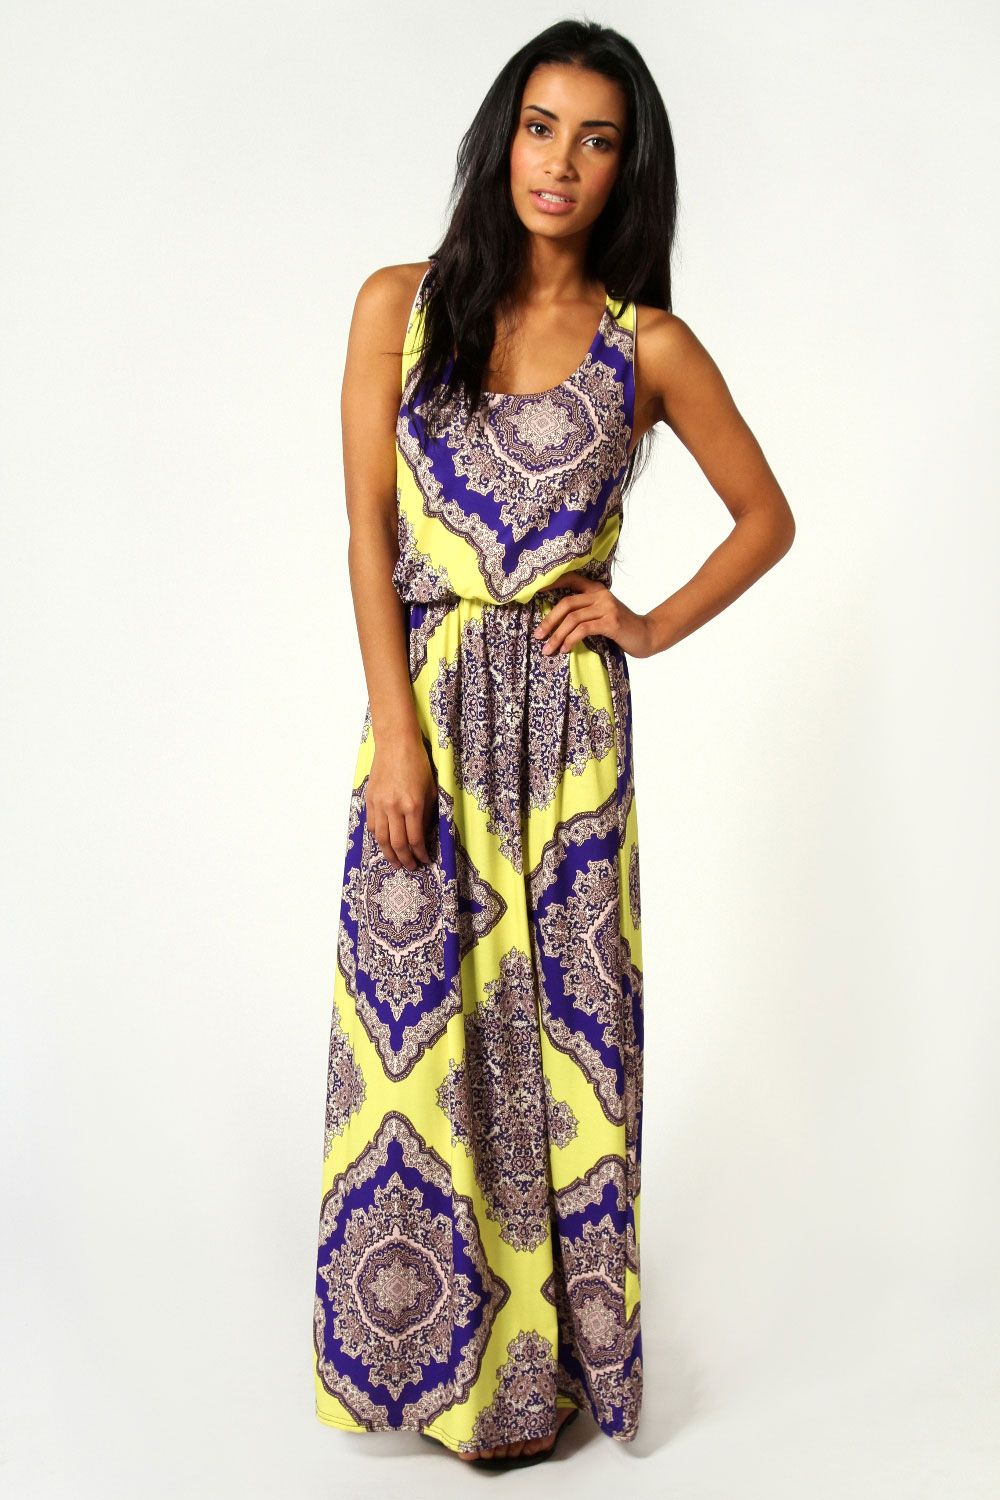 boohoo Rosie Neon Paisley Twist Back Maxi Dress - multi by @Elena Kovyrzina Rudaya